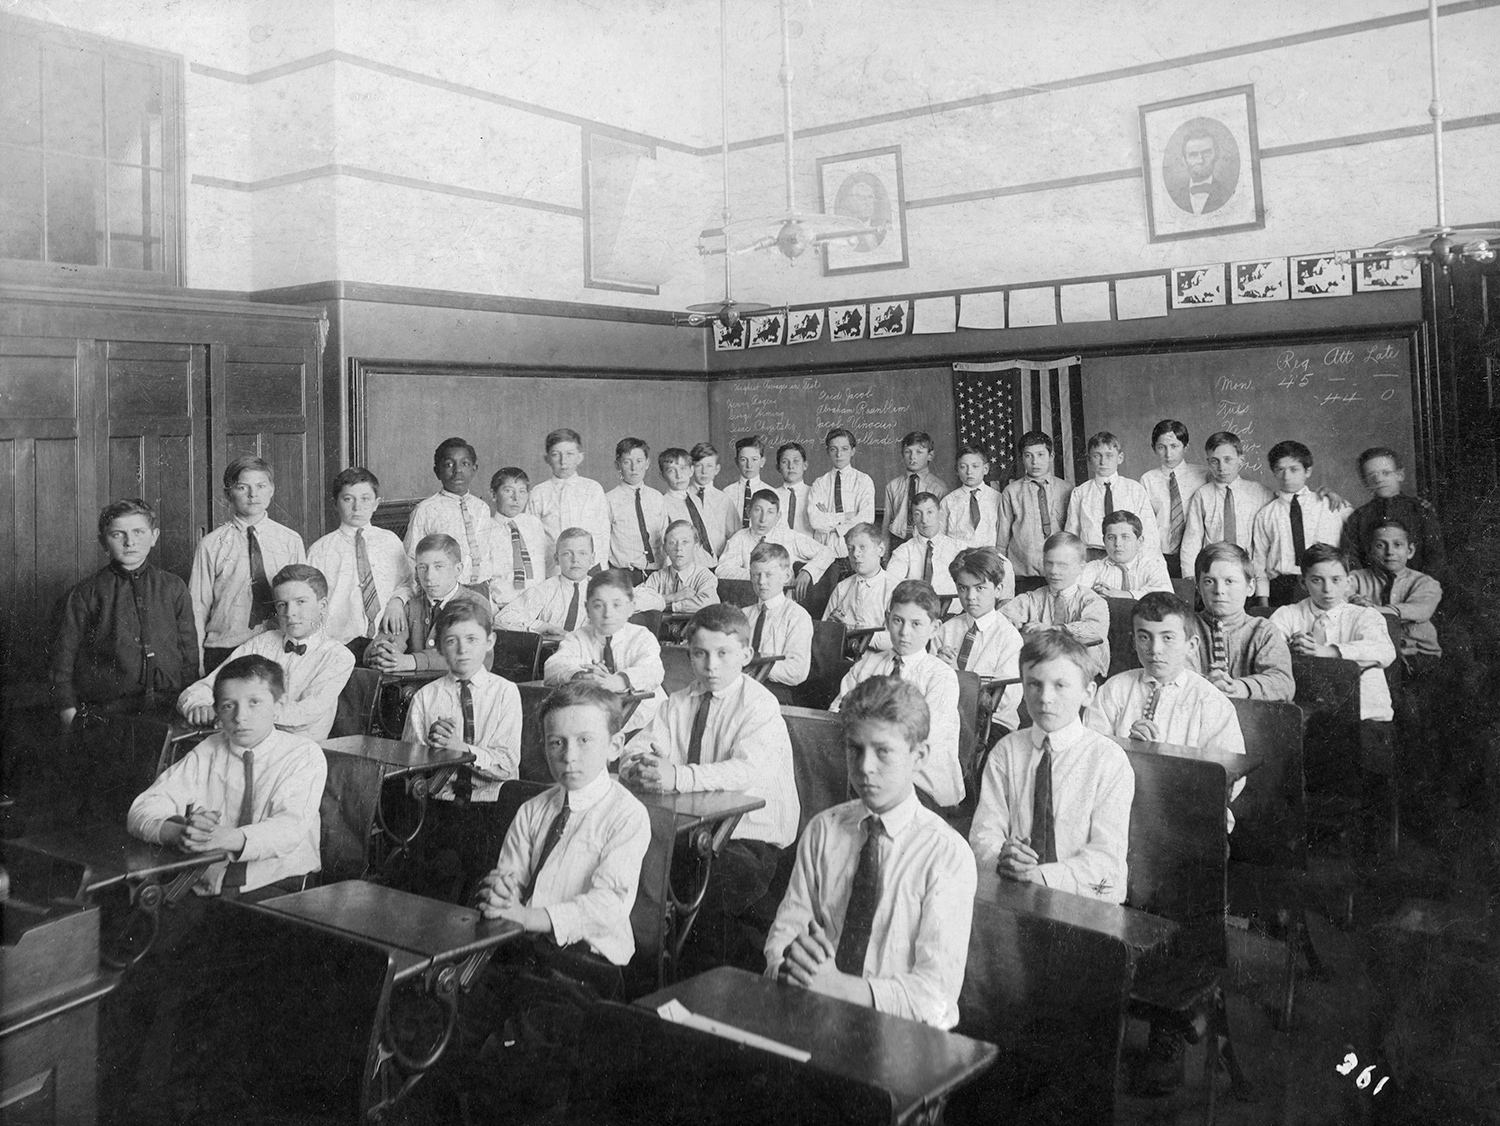 My Dad's School Photo